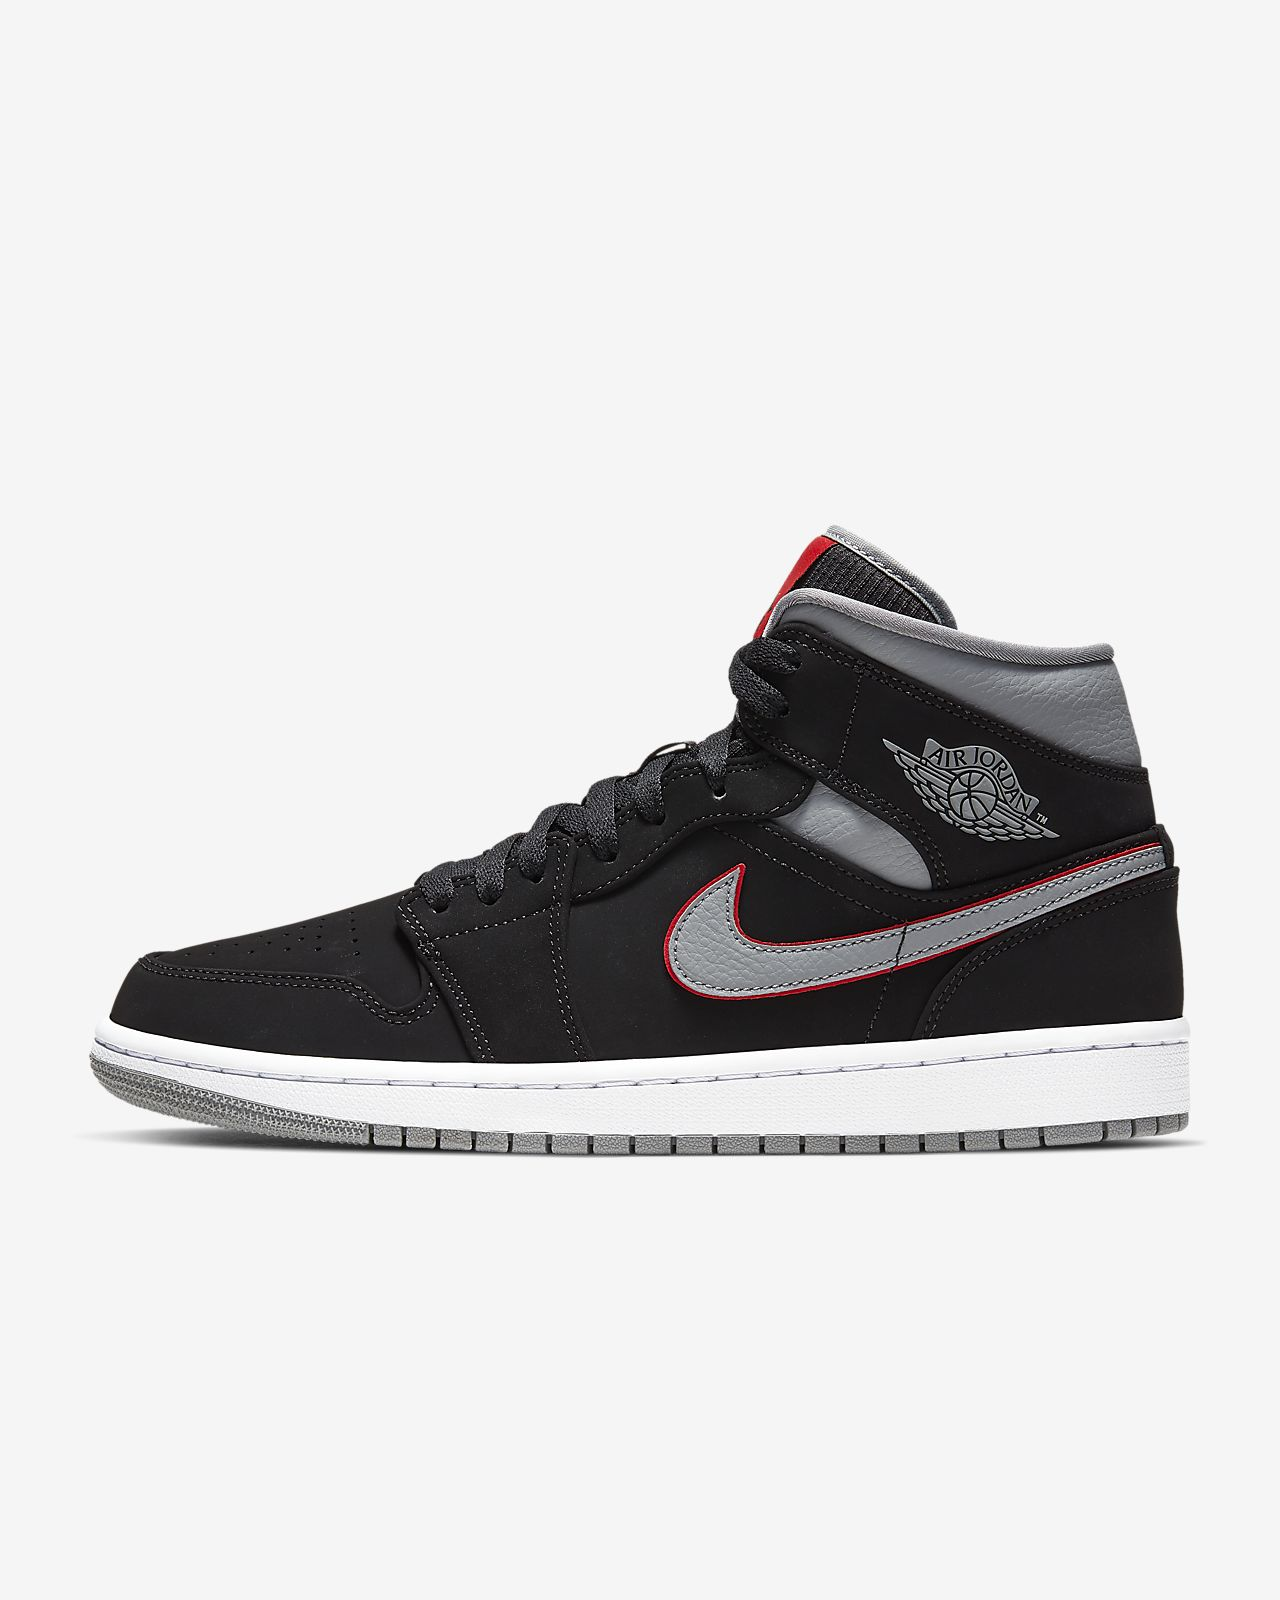 18f4d31f4748 Air Jordan 1 Mid Men s Shoe. Nike.com CA